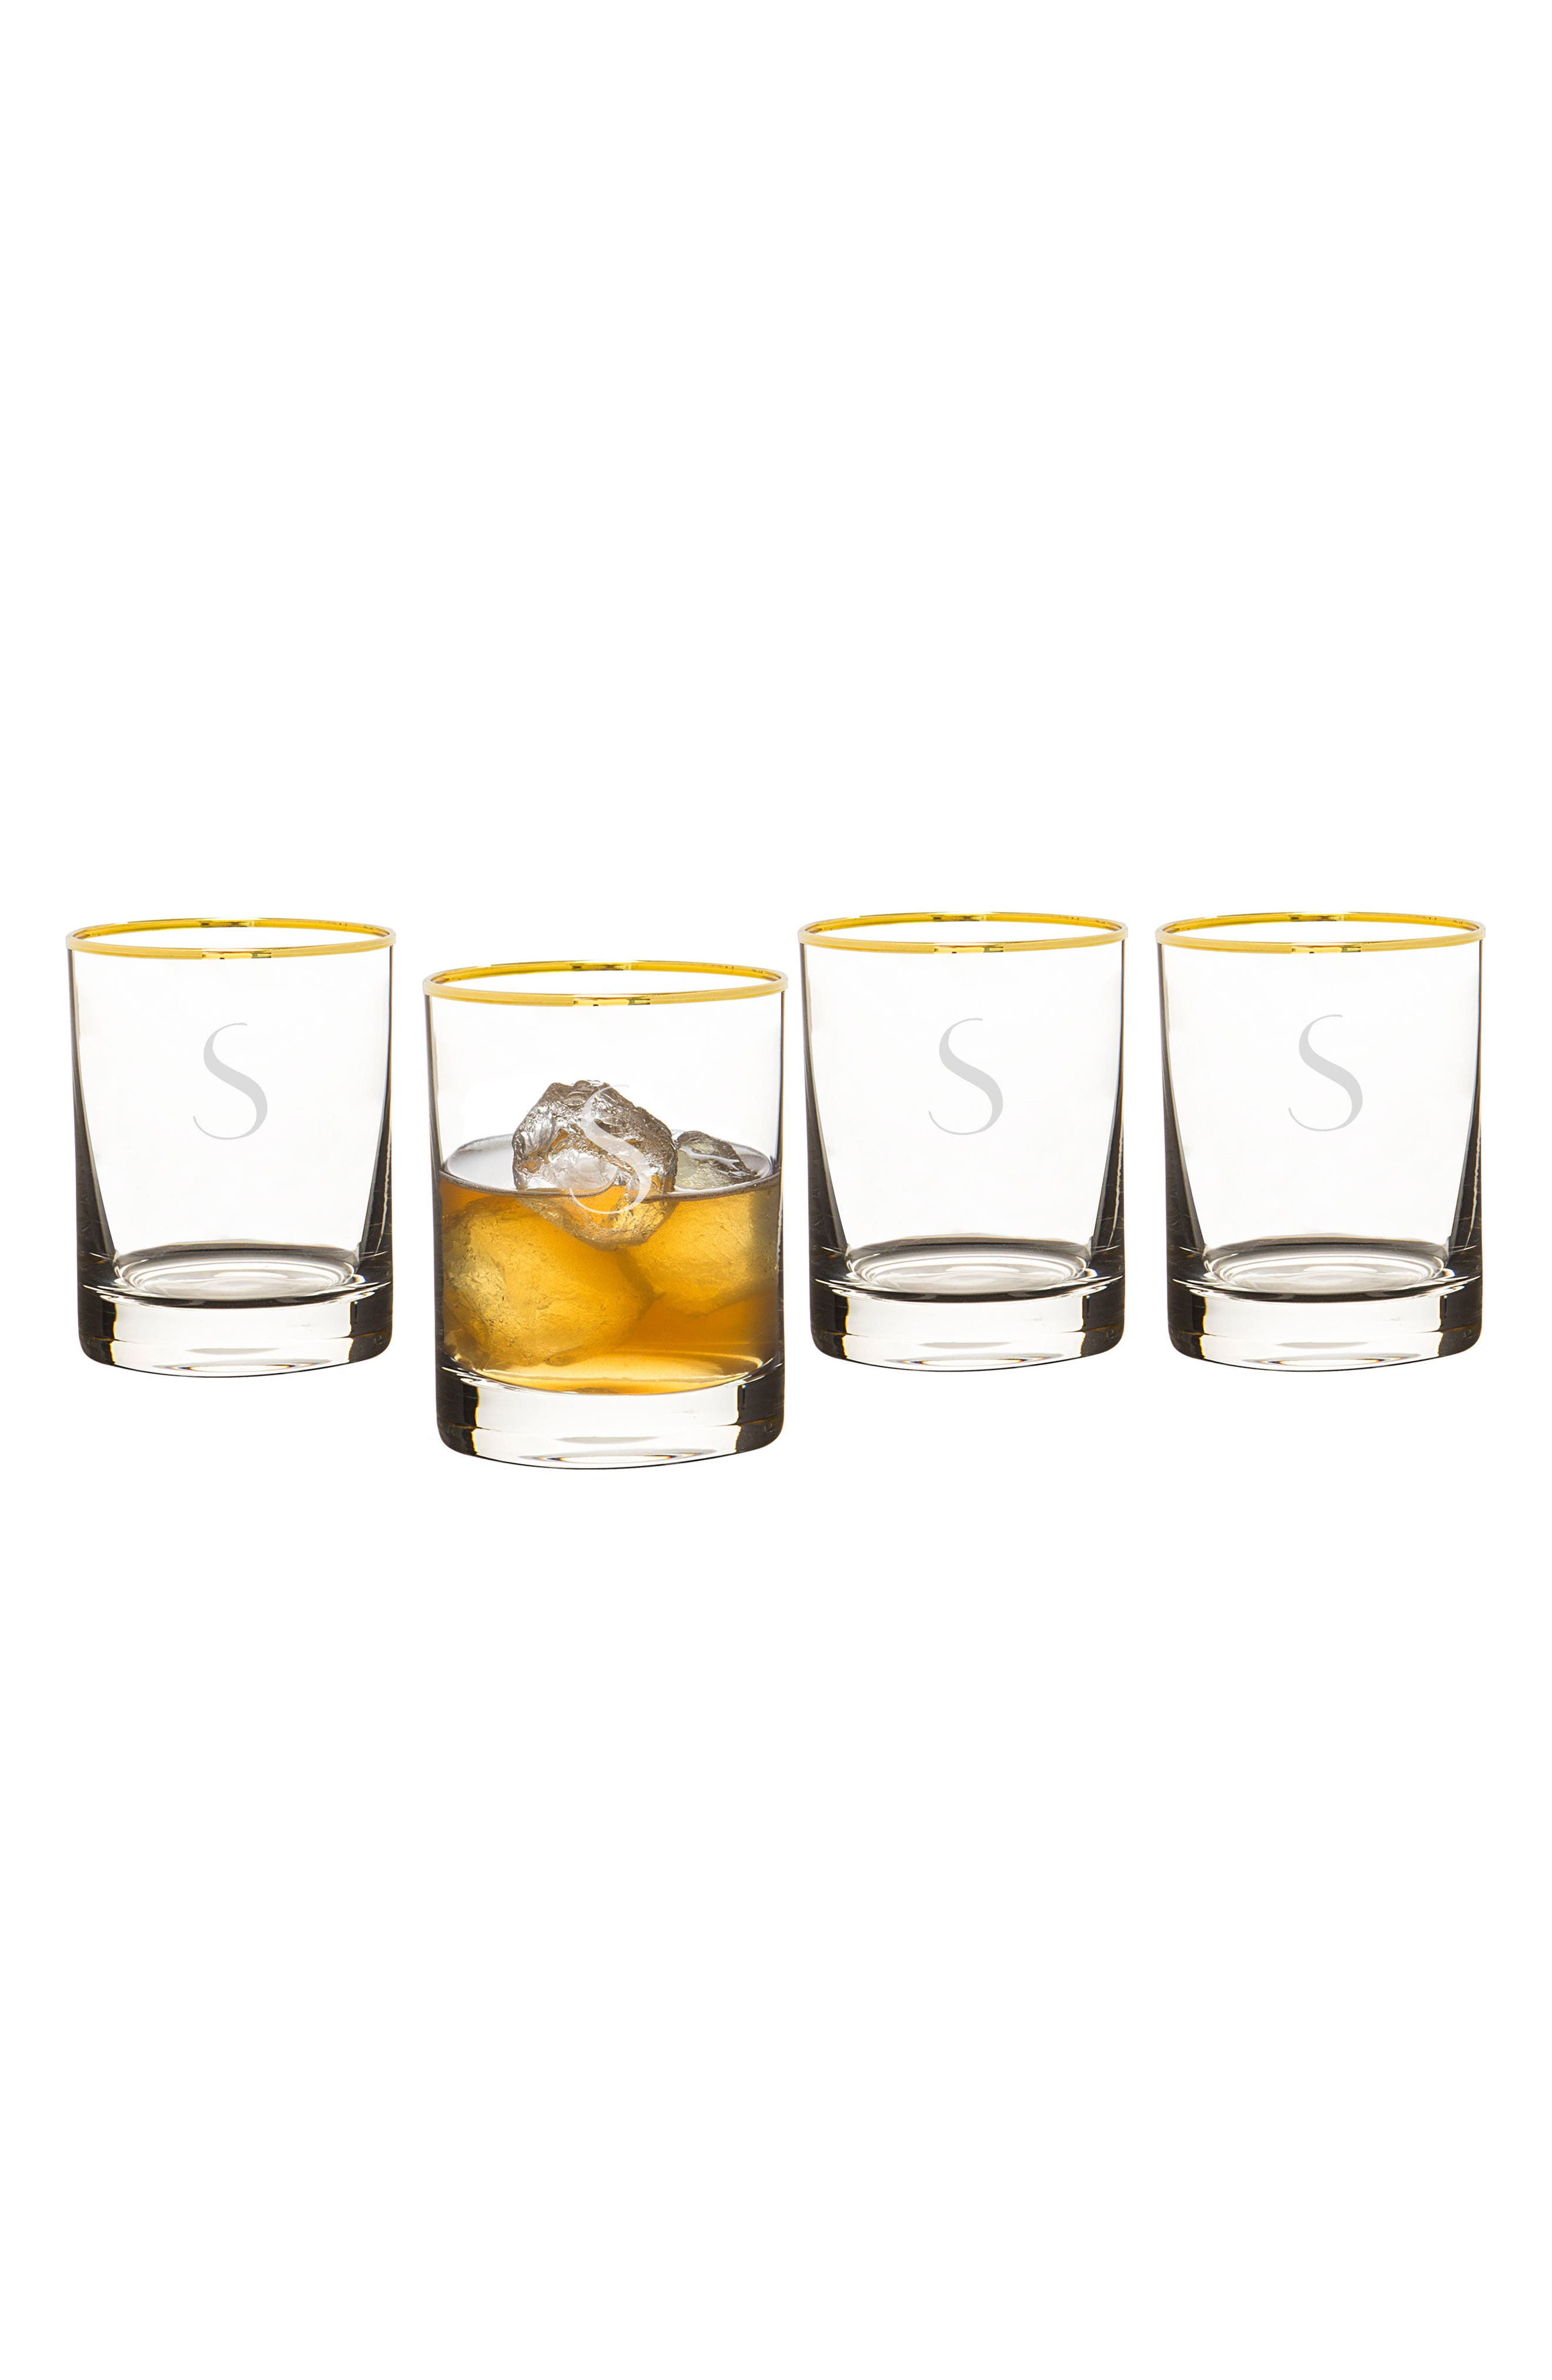 Monogram Set of 4 Double Old Fashioned Glasses,                             Main thumbnail 19, color,